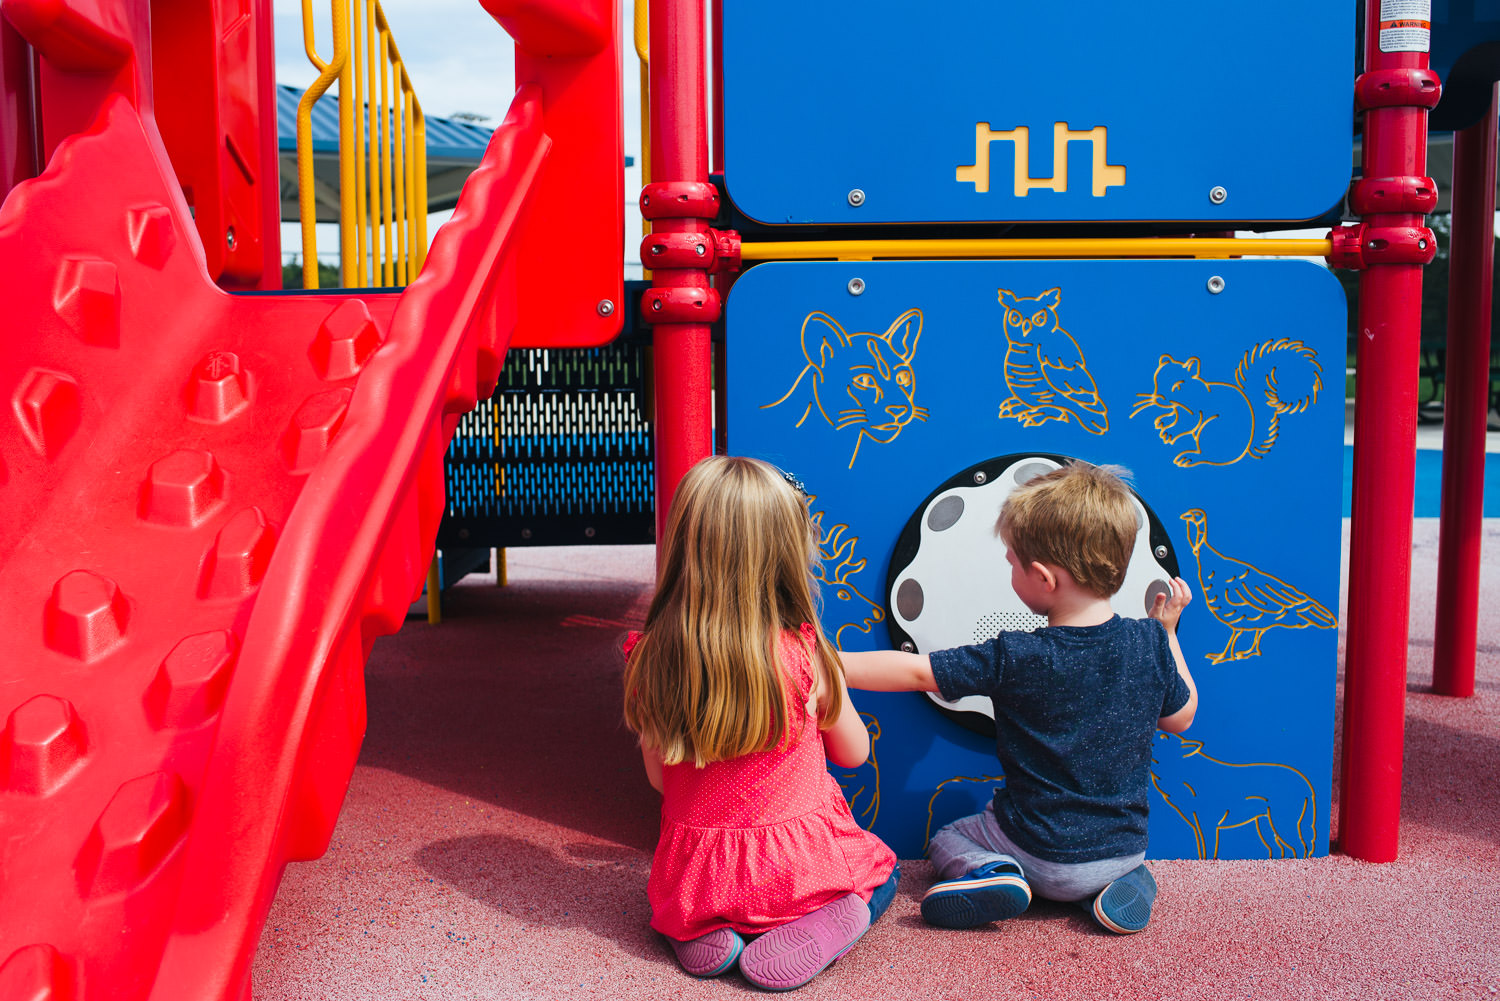 Kids play at a brightly colored playground.